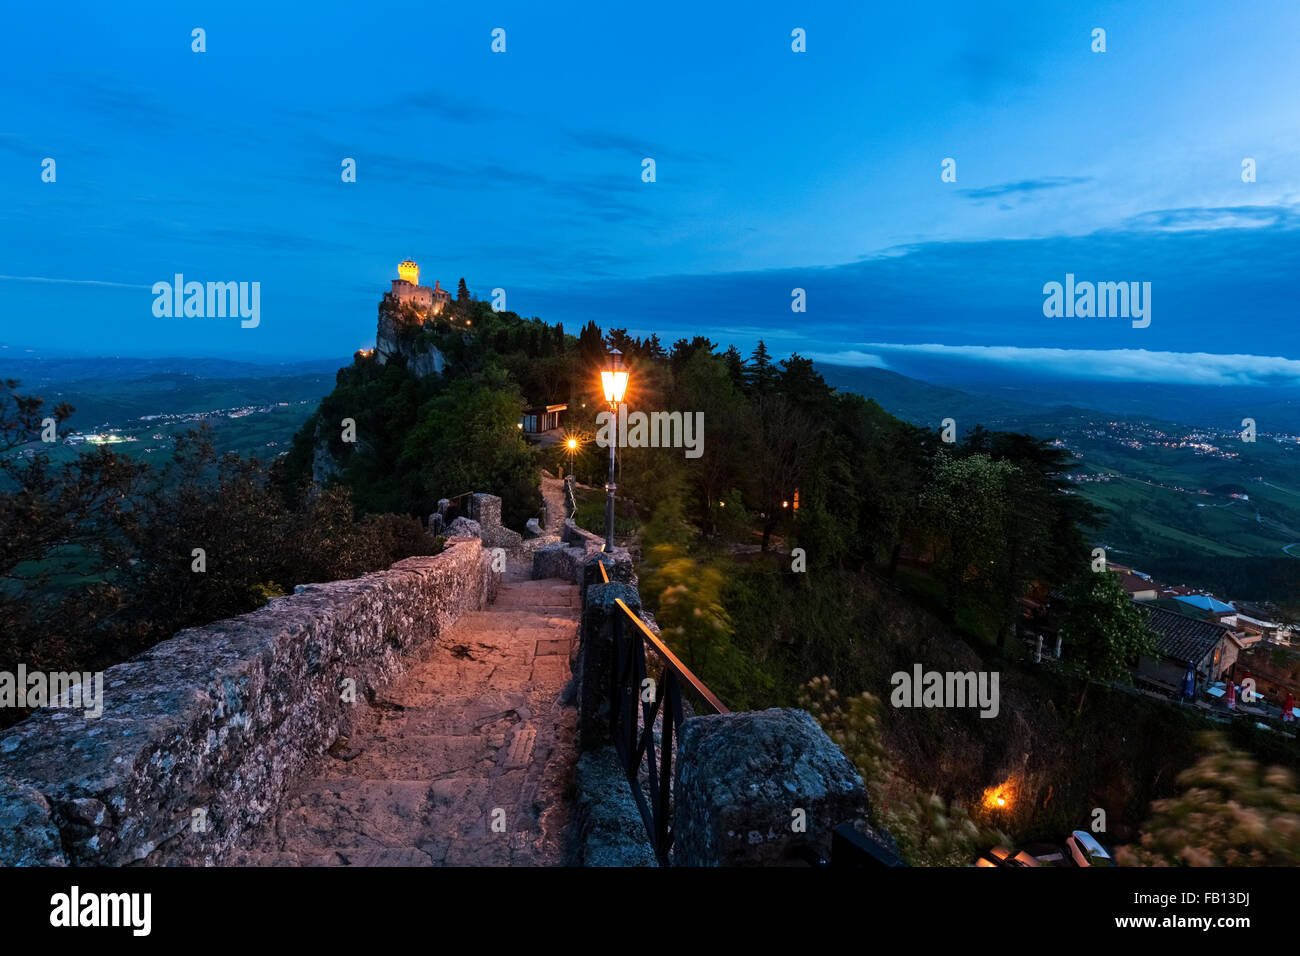 Fortified wall with Cesta Tower in background - Stock Image